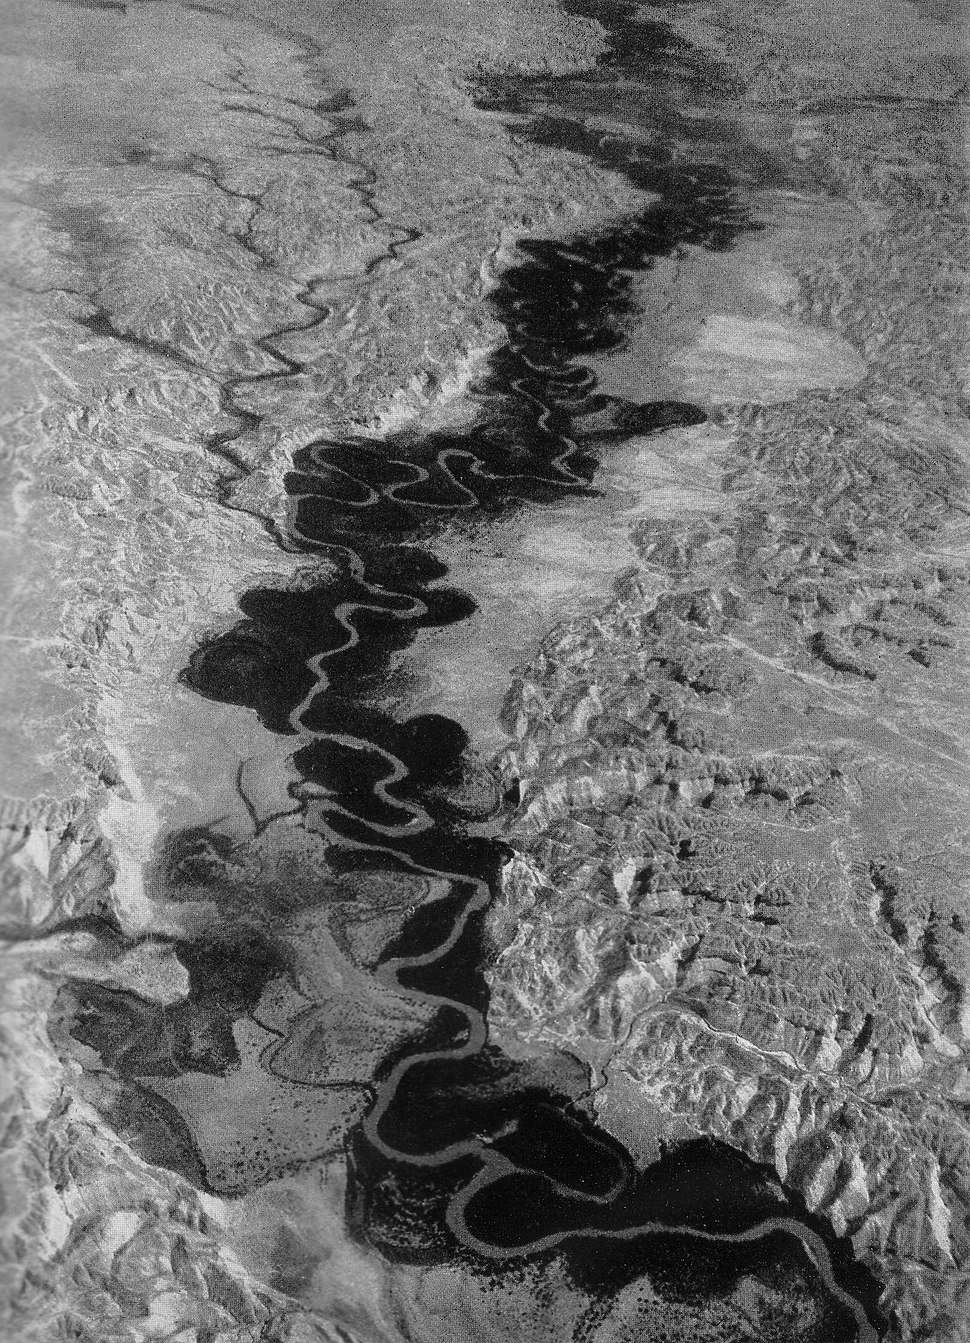 The Jordan River loops, aerial view 1938